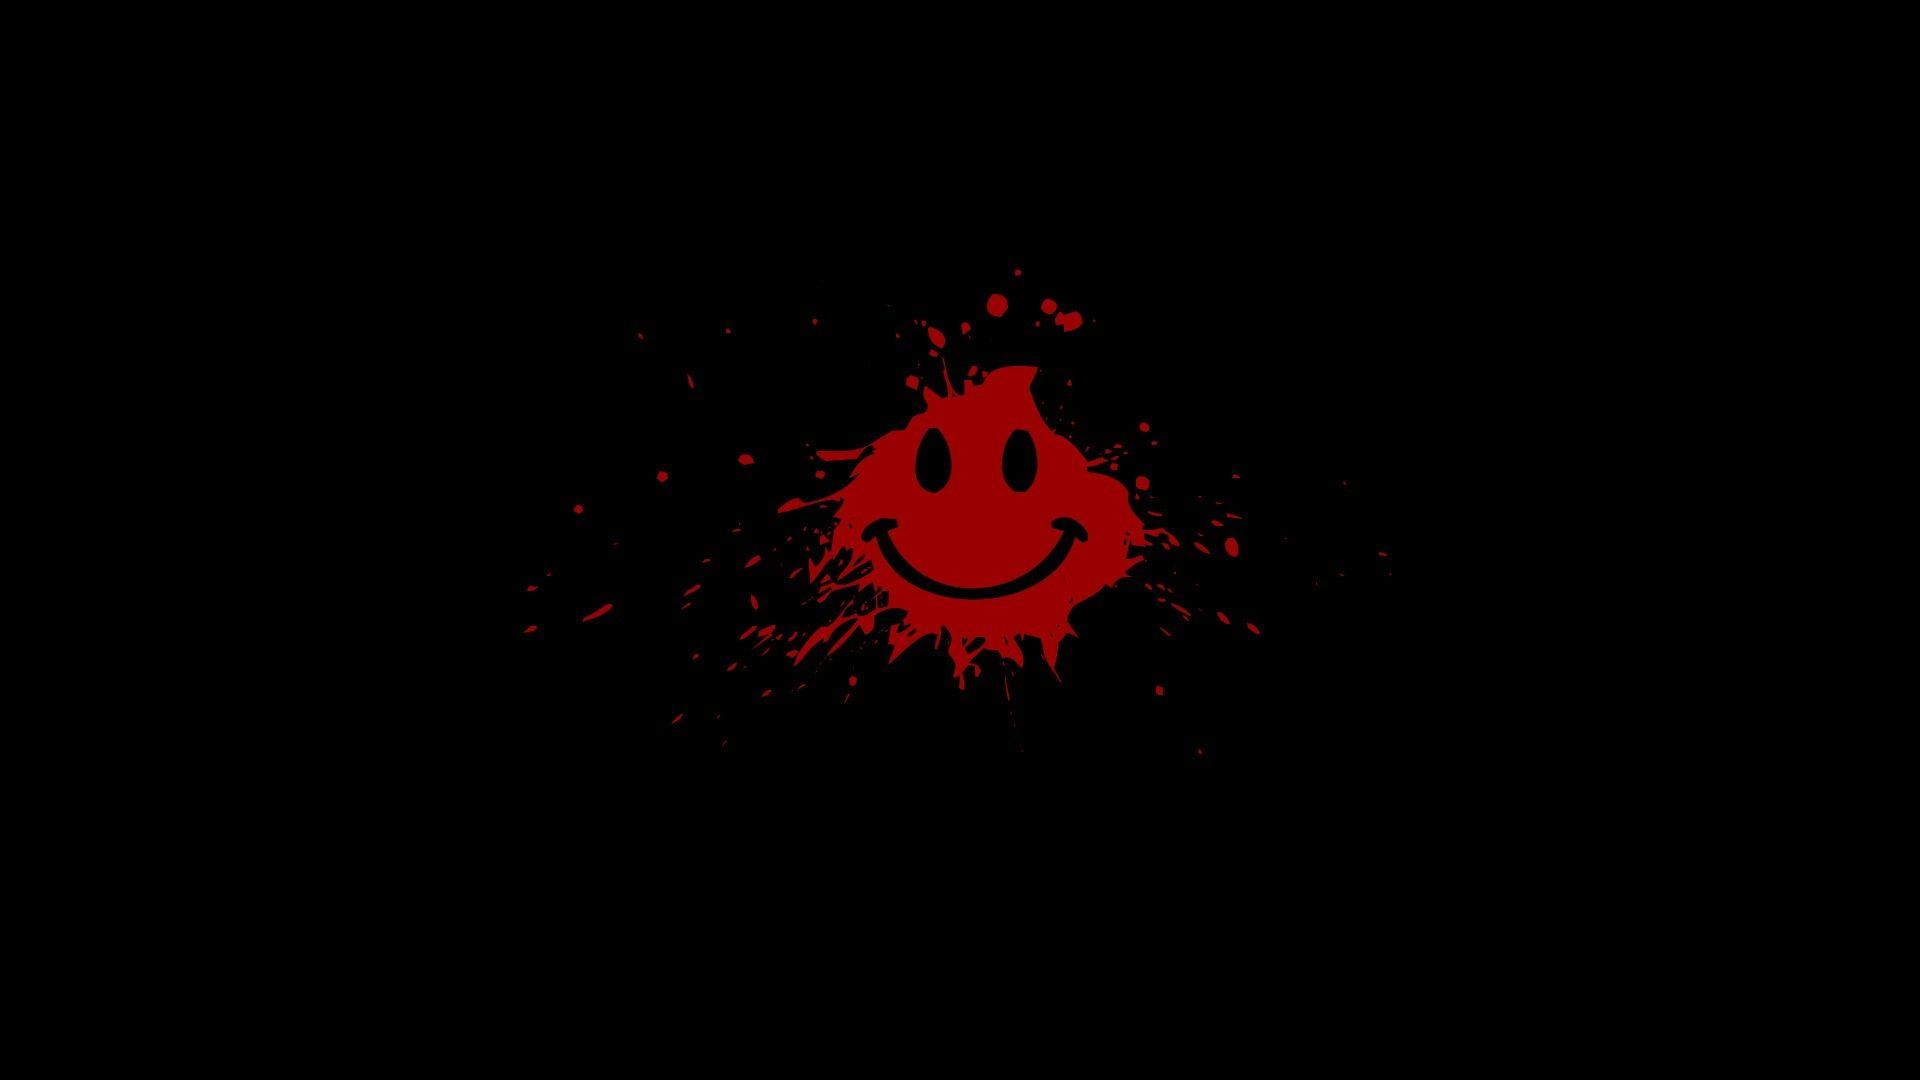 Hd Smiley Face Wallpaper: Smiley Wallpapers